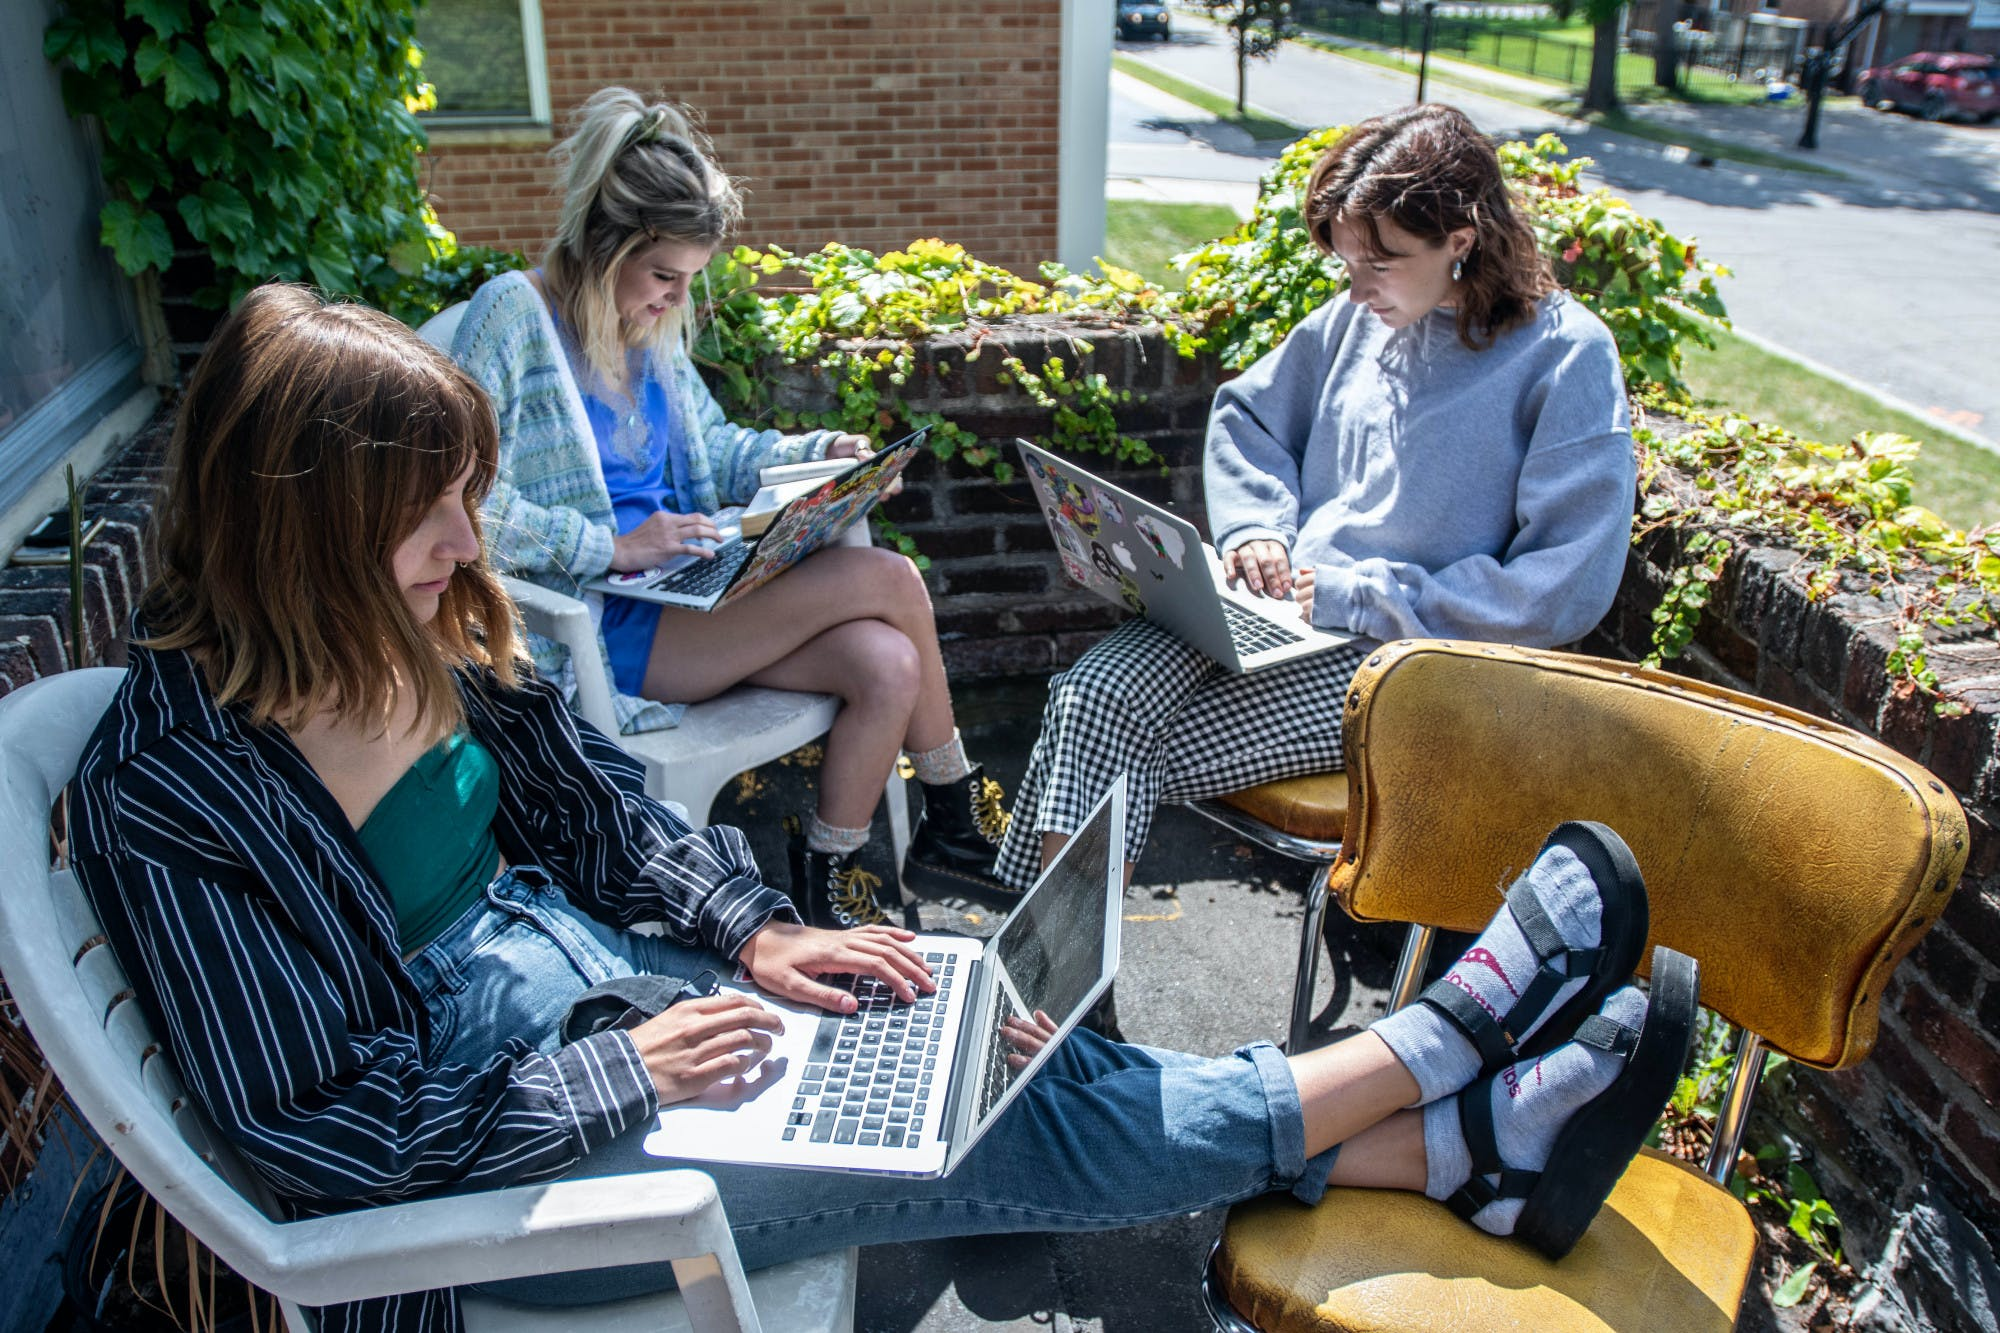 Three people sit in chairs outside on a balcony while working on laptops.